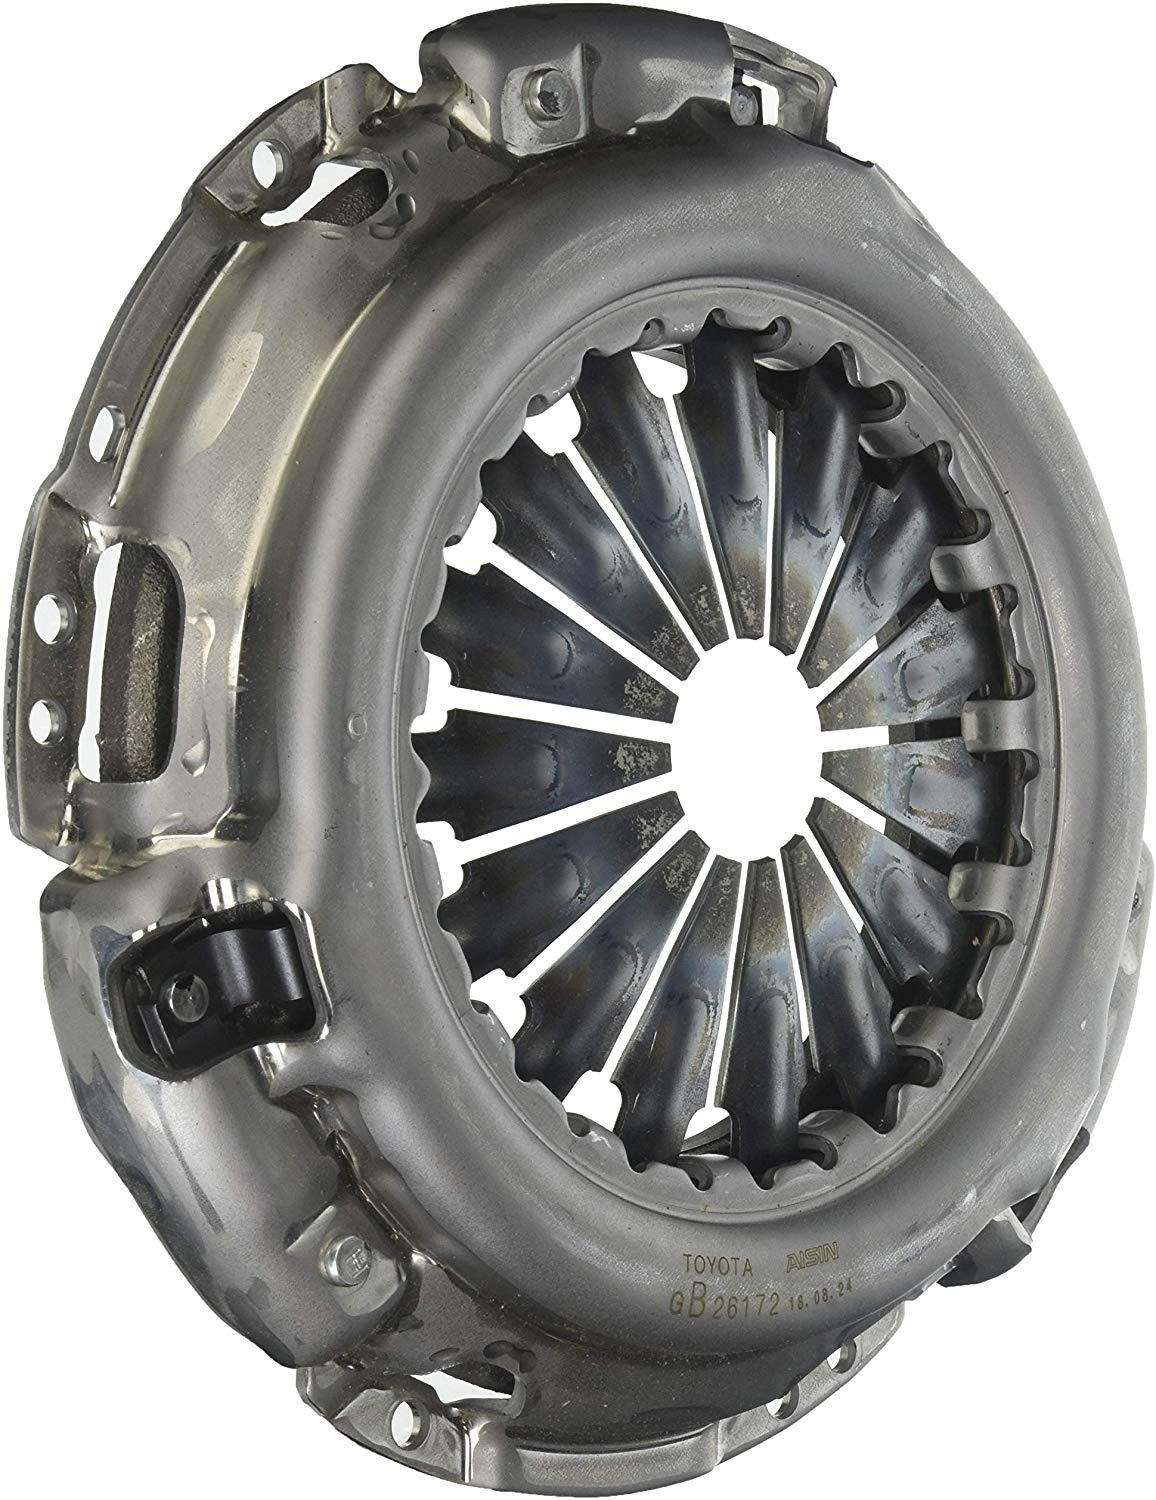 Luk Clutch Pressure Plate For Tata 1510TC Tipper Models BSIII Type 3 Lever 330 - 1330276100